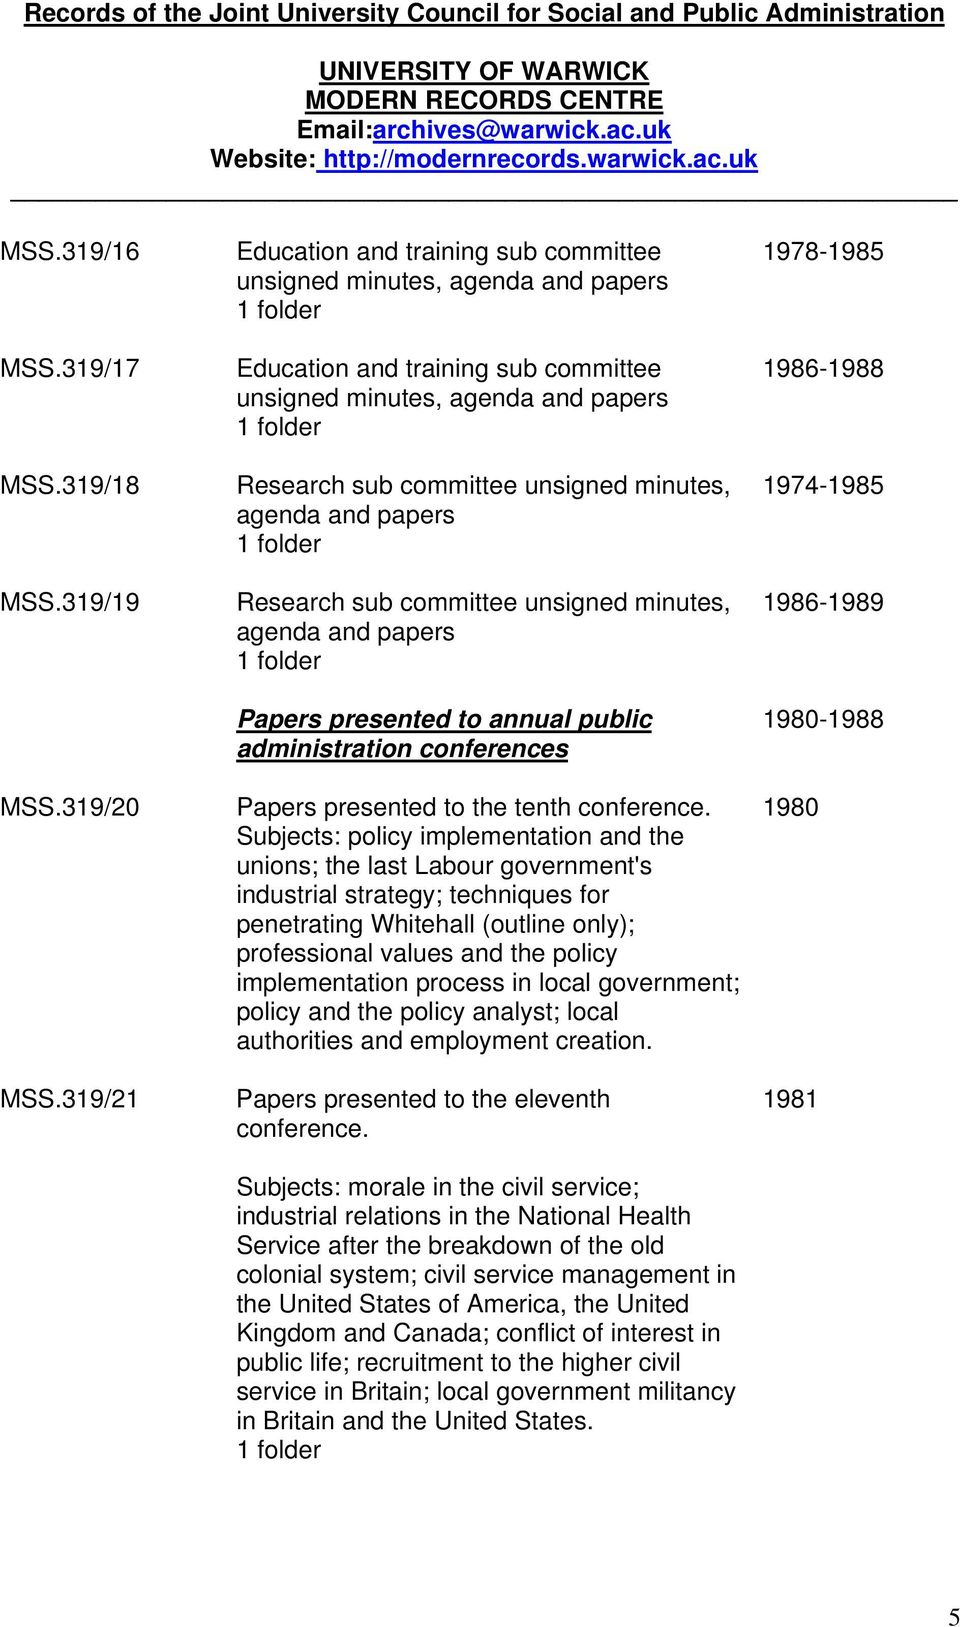 agenda and papers Research sub committee unsigned minutes, agenda and papers Papers presented to annual public administration conferences Papers presented to the tenth conference.